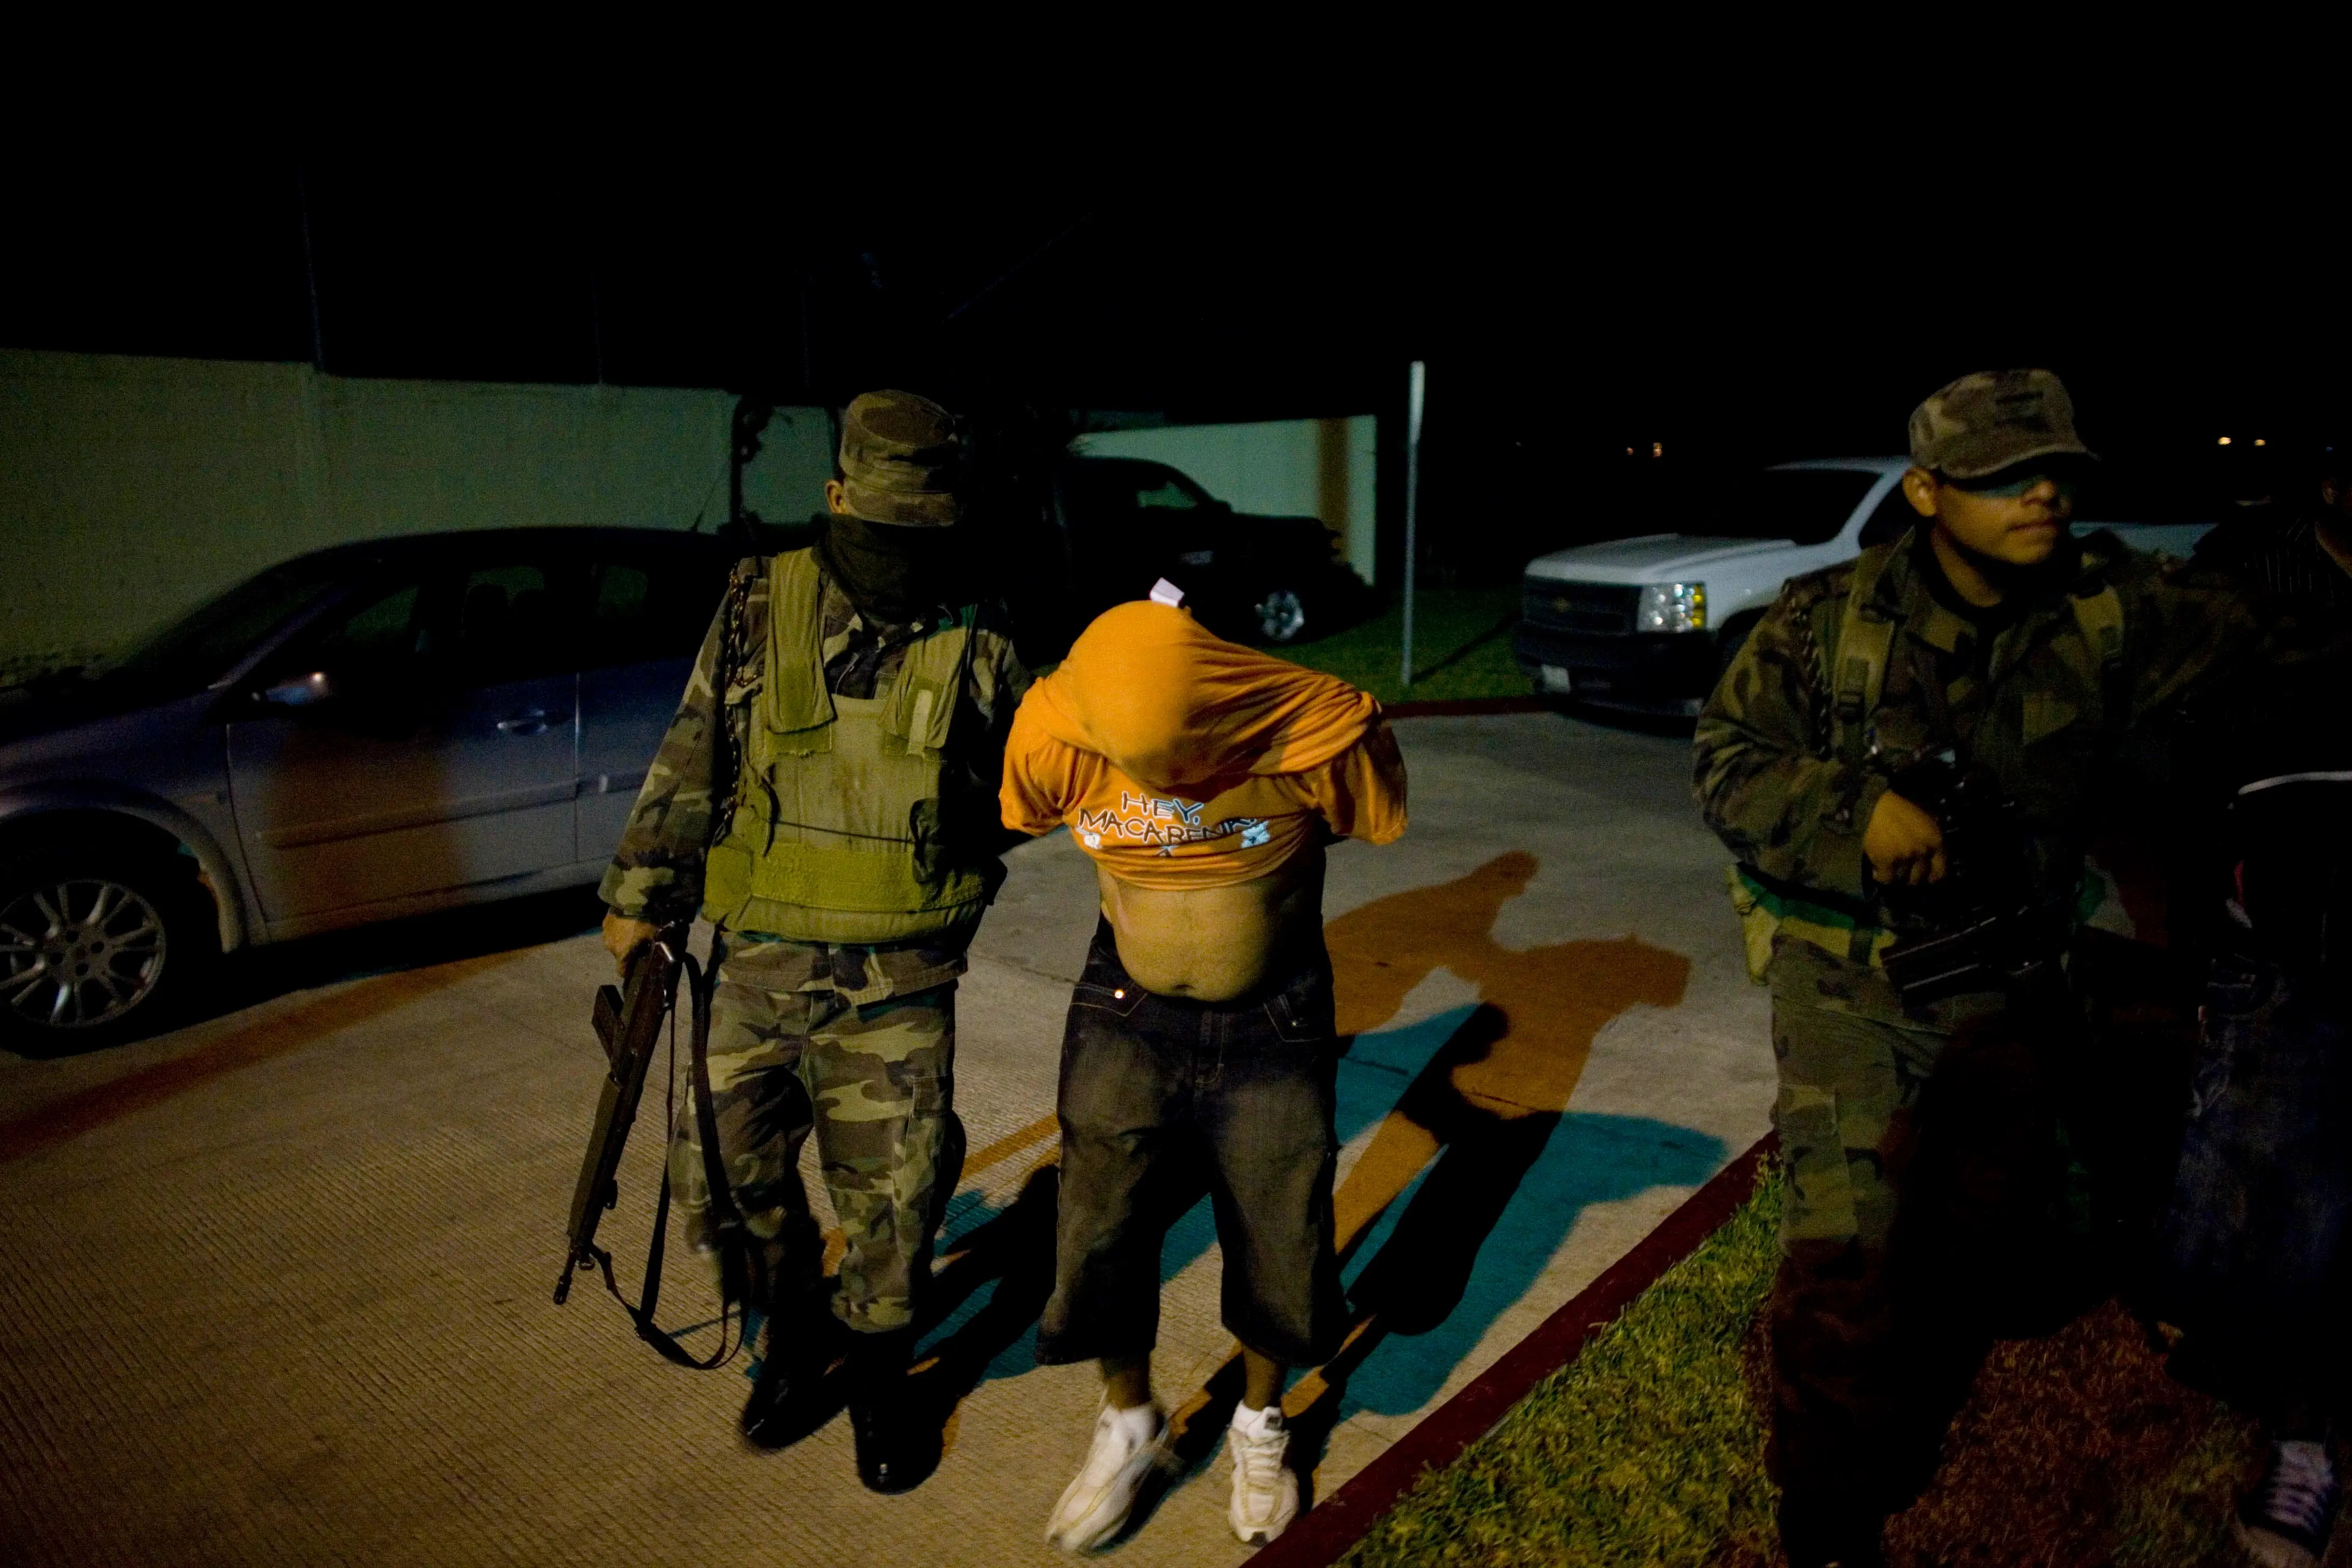 Reynosa Tamaulipas Mexico soldiers police arrest kidnapping